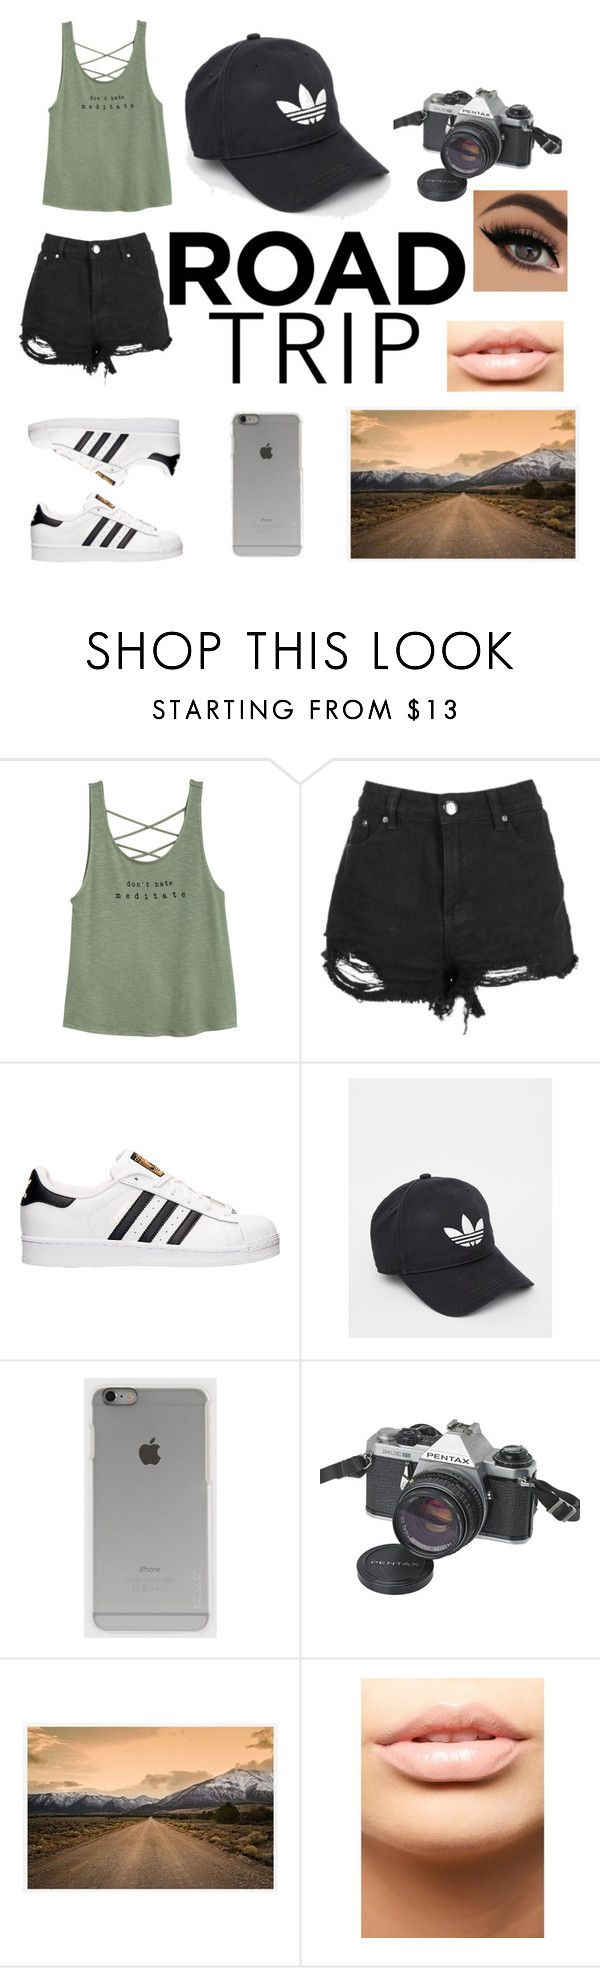 """""""Untitled #300"""" by taco-bell-love ❤ liked on Polyvore featuring adidas, Incase, Pentax, Pottery Barn, MDMflow and roadtrip"""